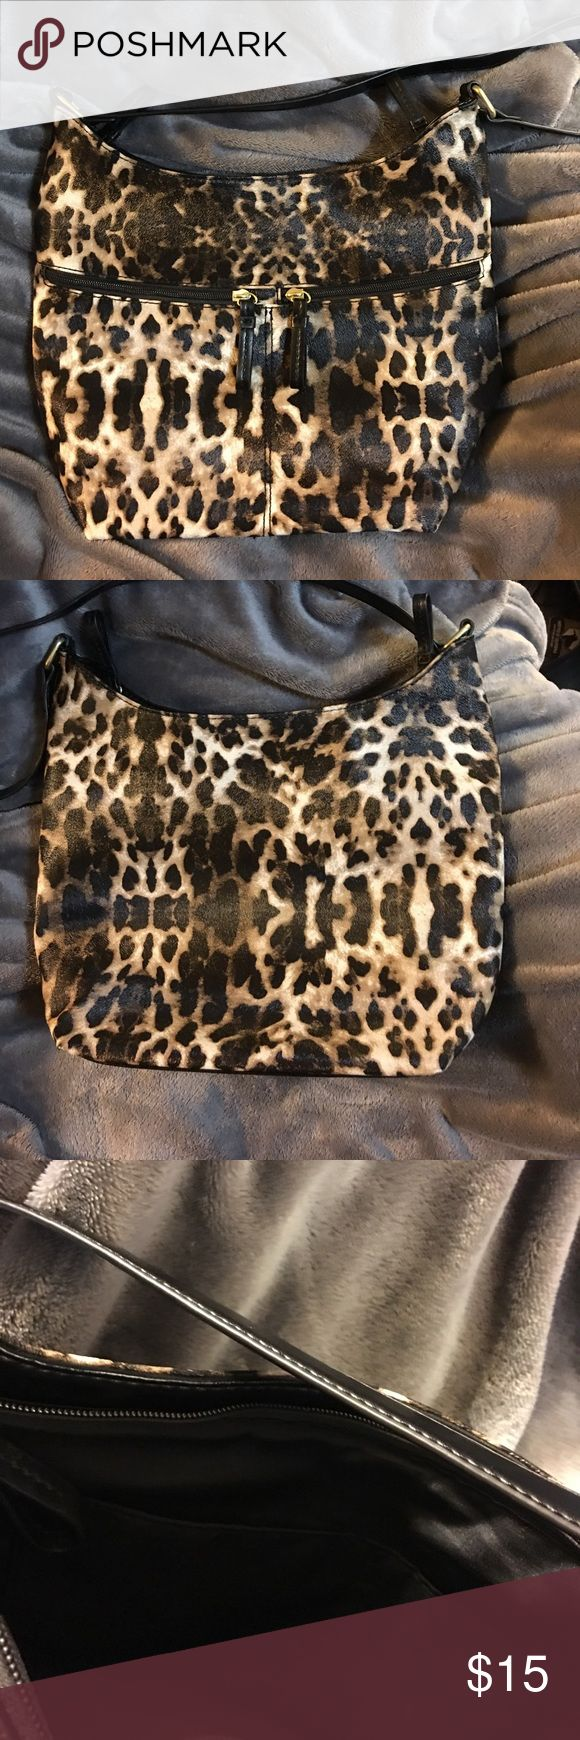 Lots of pockets! FUN Animal Print Shoulder Bag Very clean, lots of pockets, 2 zip pockets on the front, two large compartments with organization pockets in both, Shoulder bag, NonSmoking home Bags Shoulder Bags